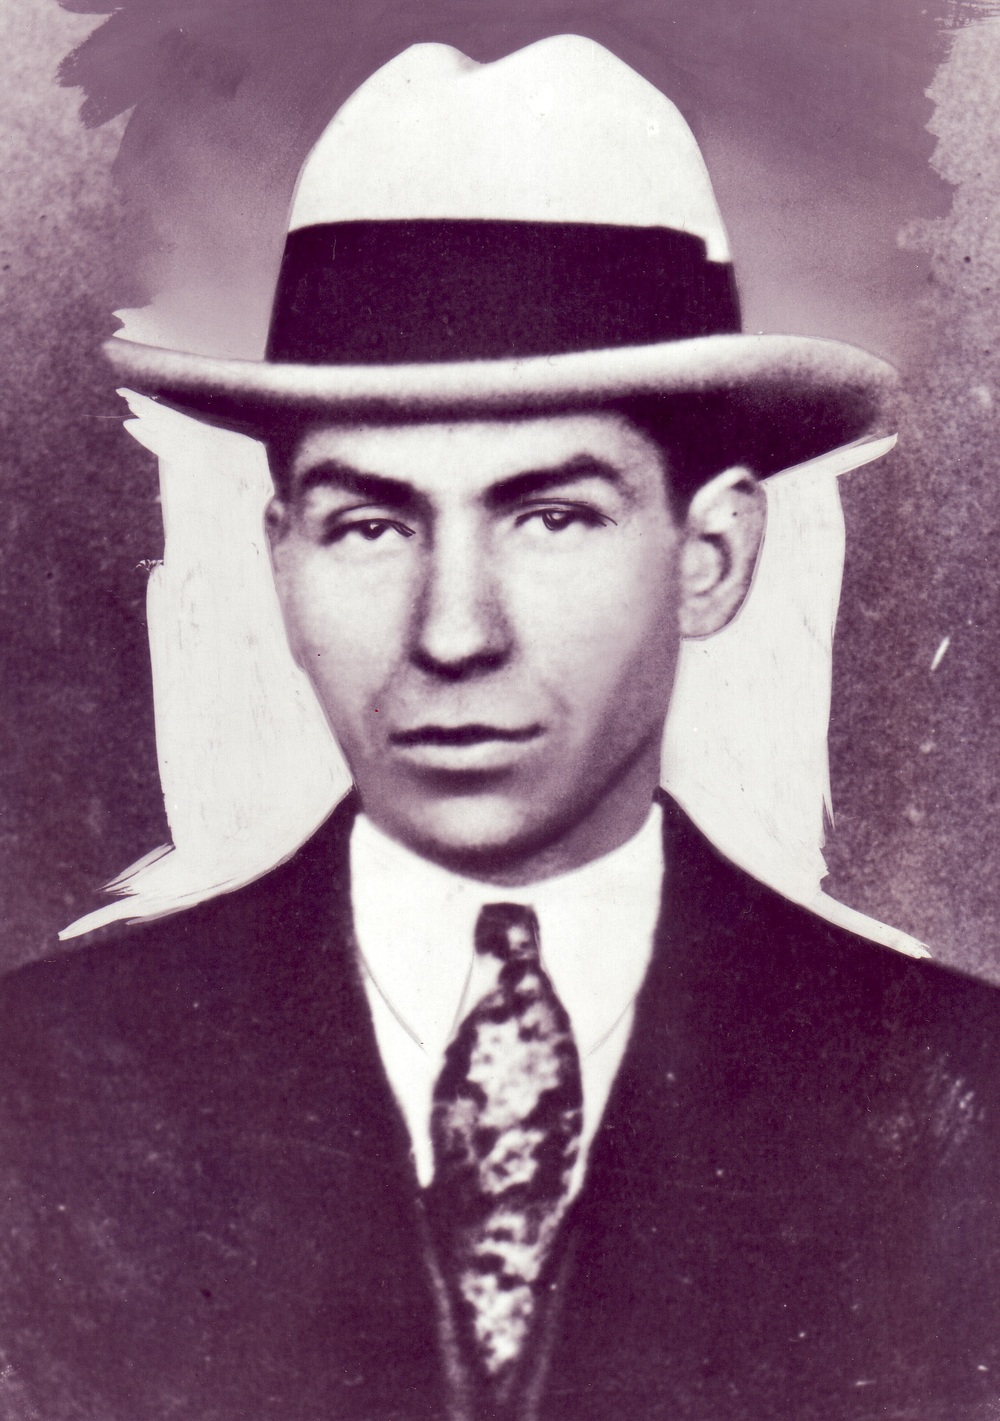 A snappy dresser, Luciano was fond of wearing handmade shoes, silk shirts and finely tailored suits.